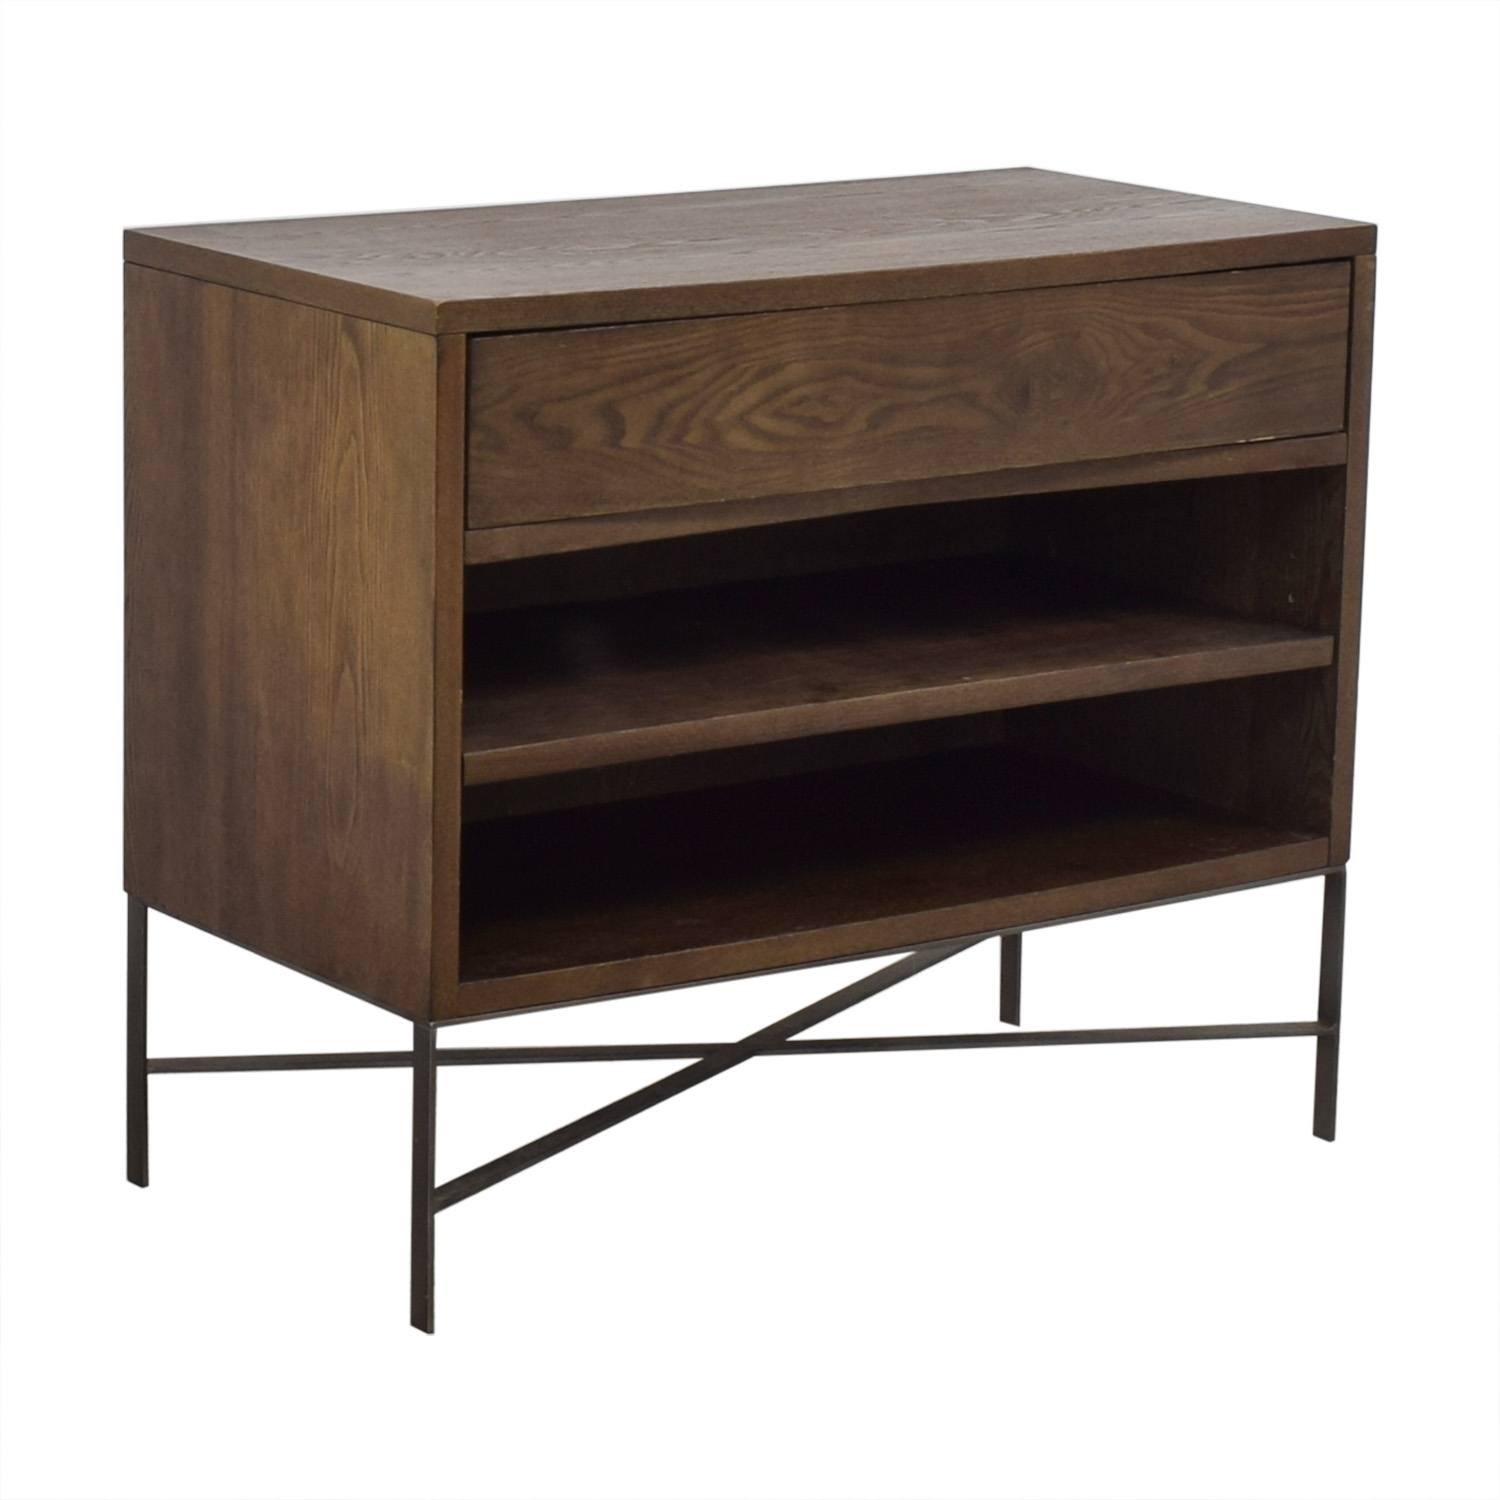 West Elm West Elm Preston Media Console used